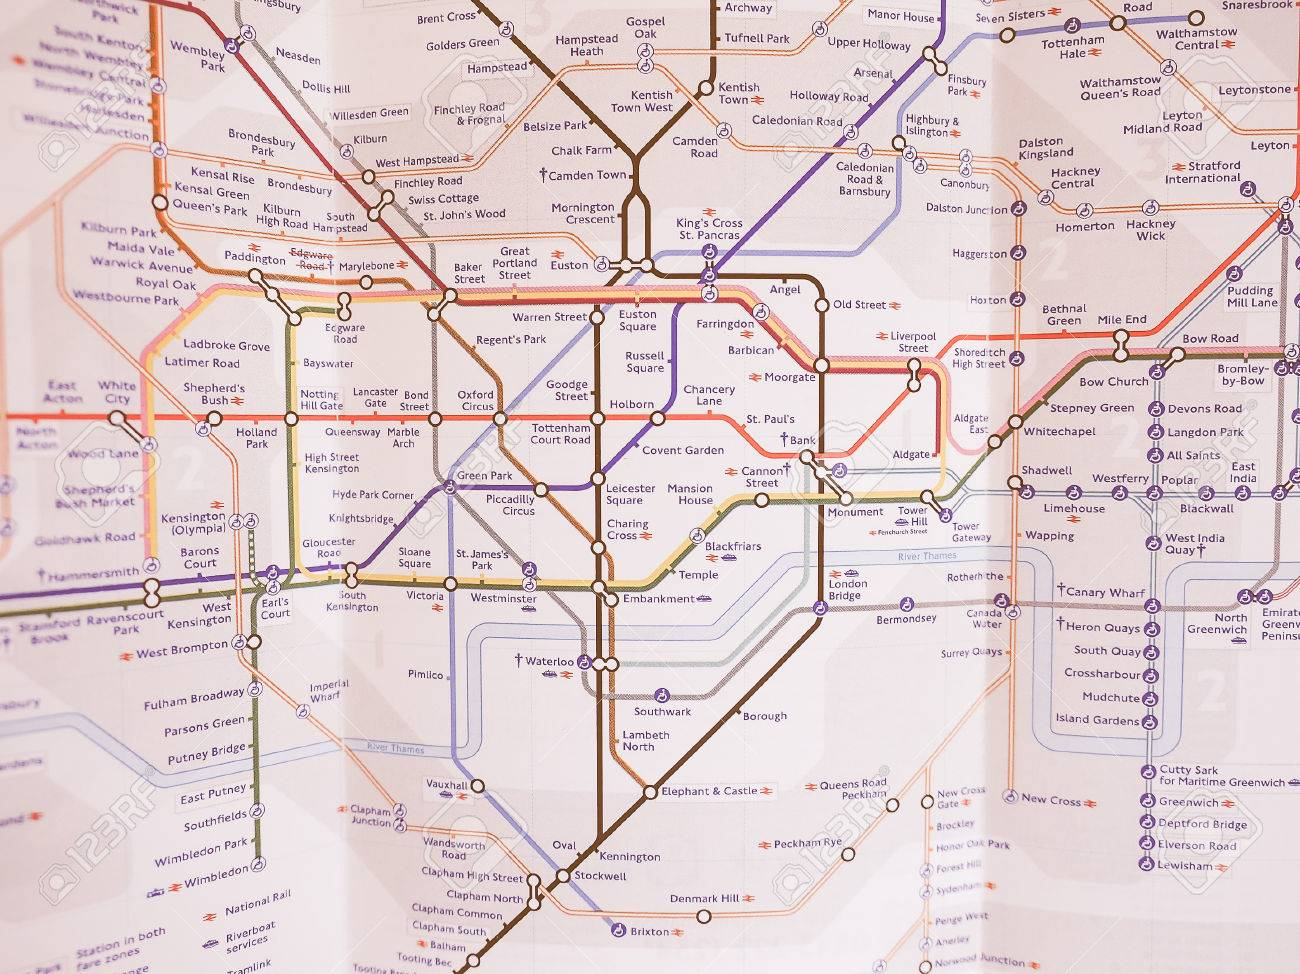 london uk january 10 2015 tube map of the london underground subway